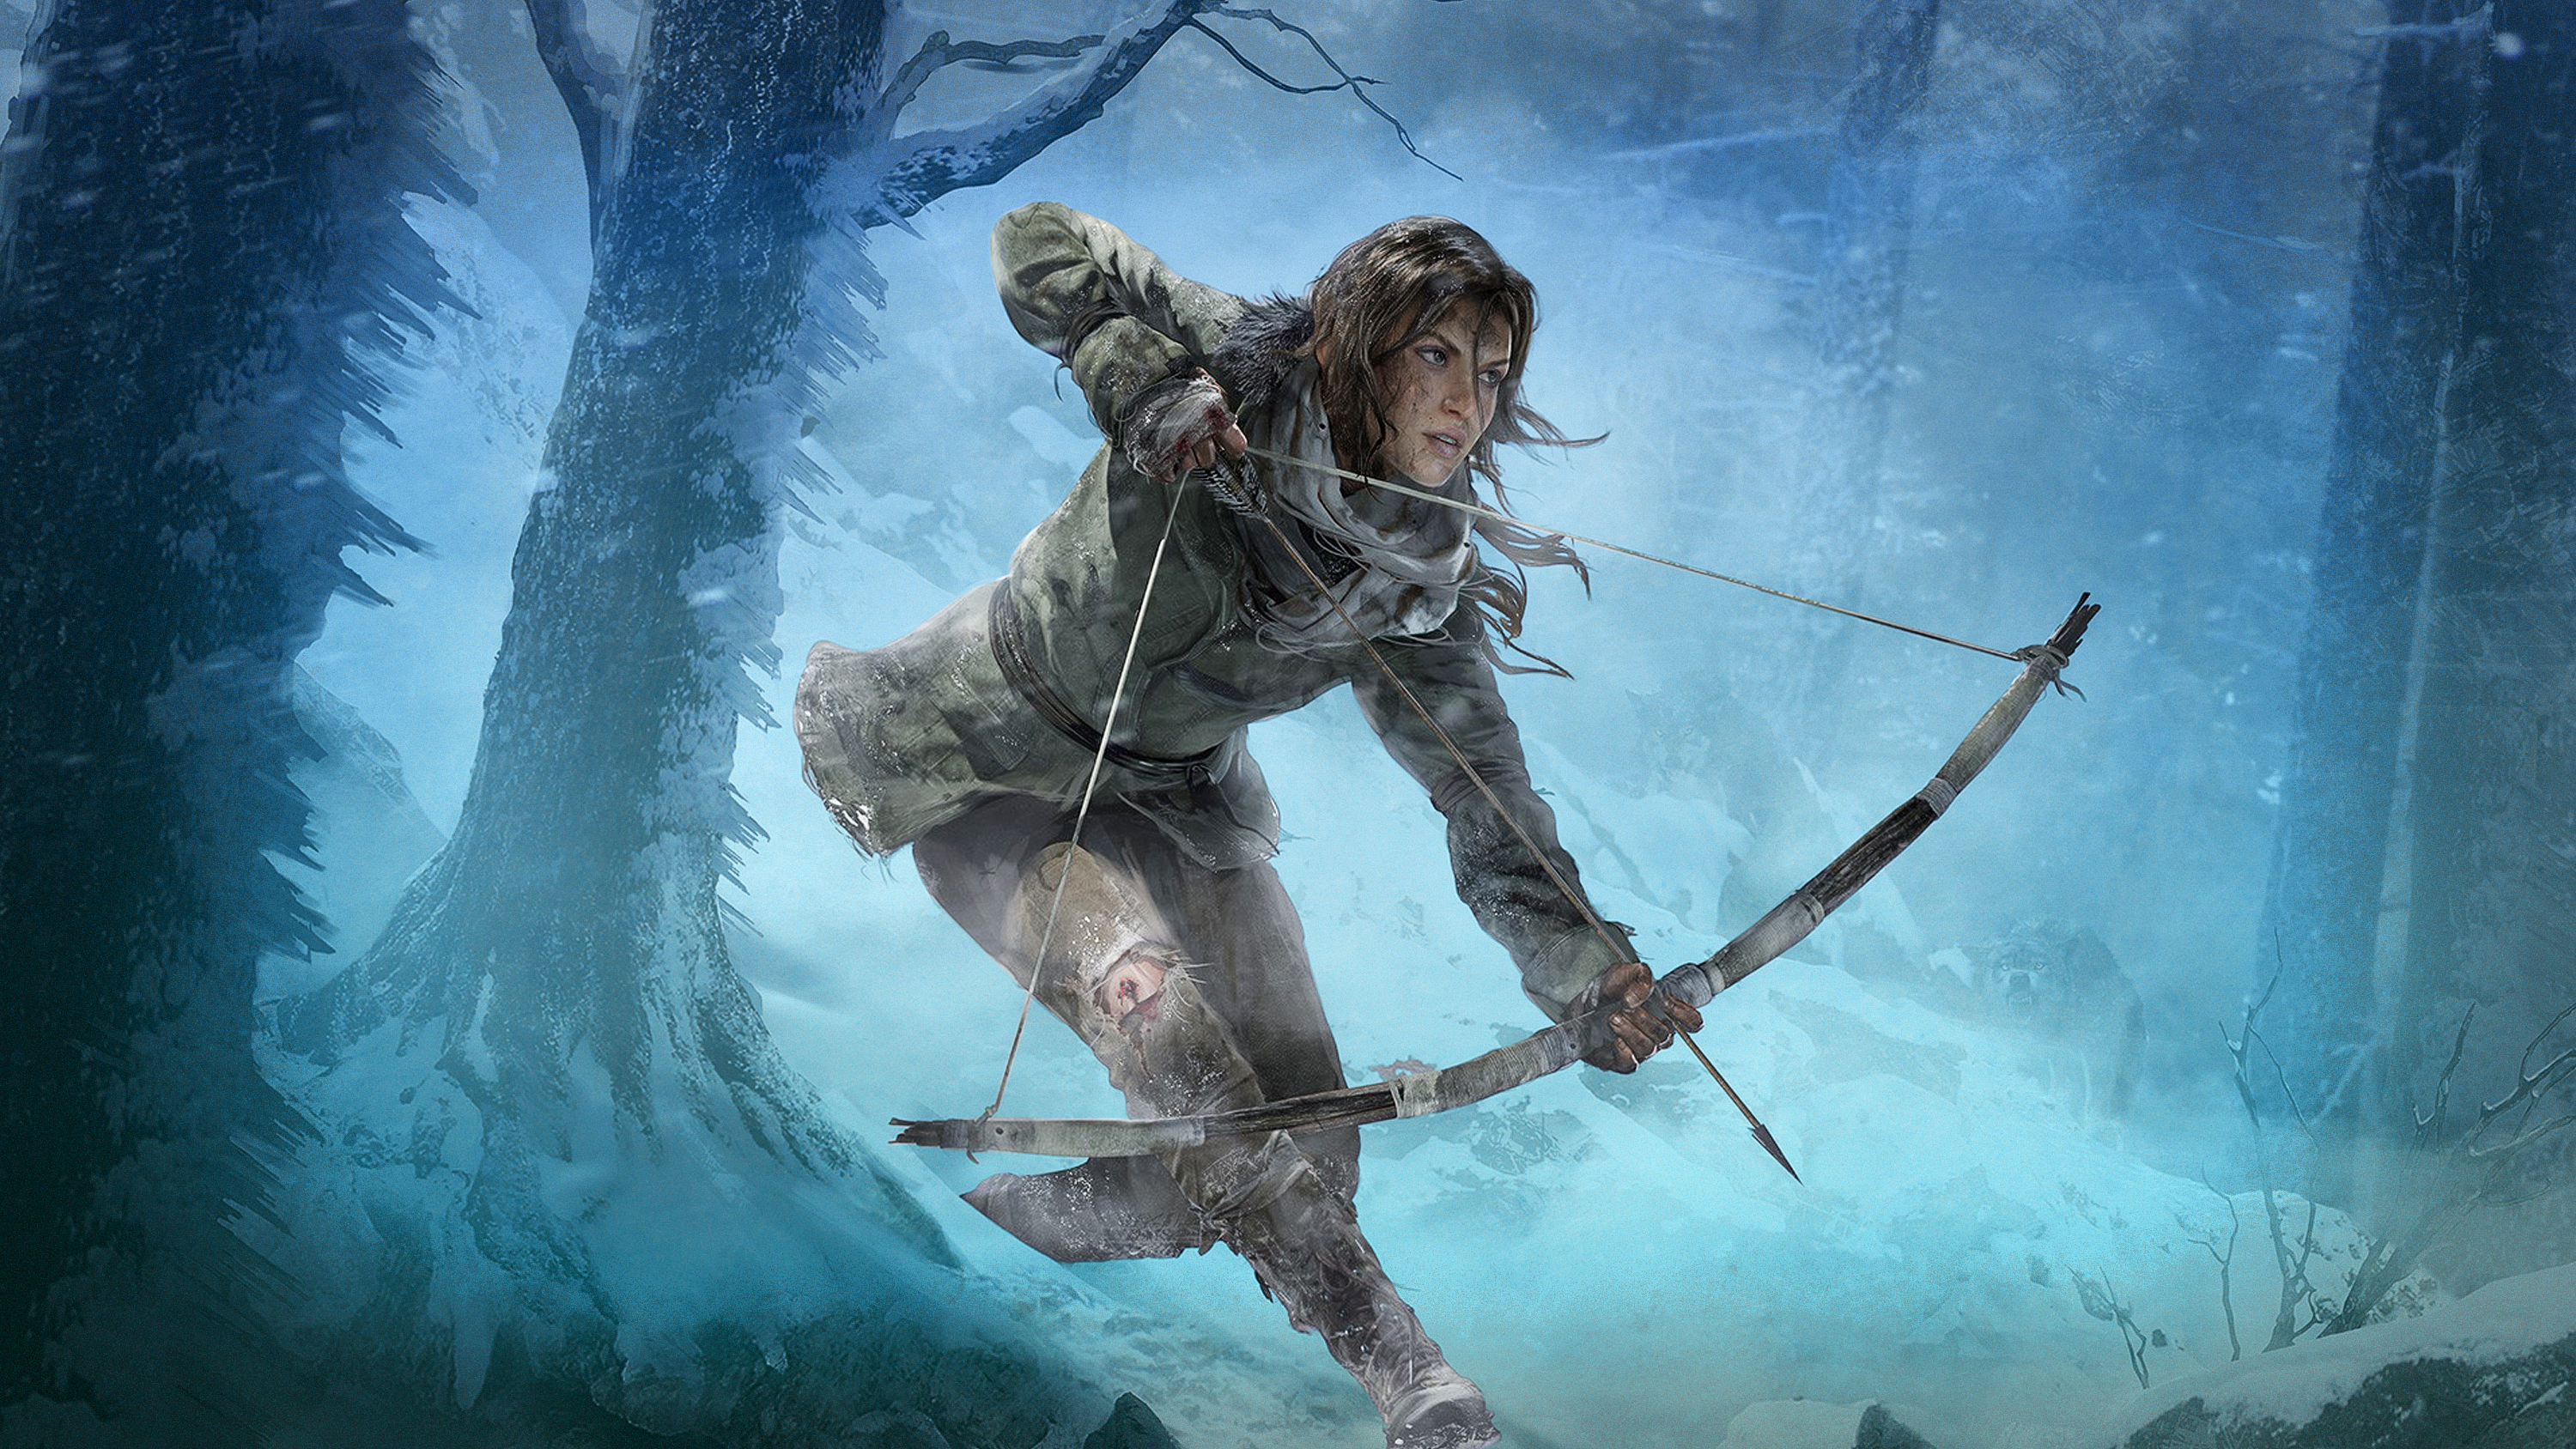 Lara Croft character running through snowy woods and drawing a bow